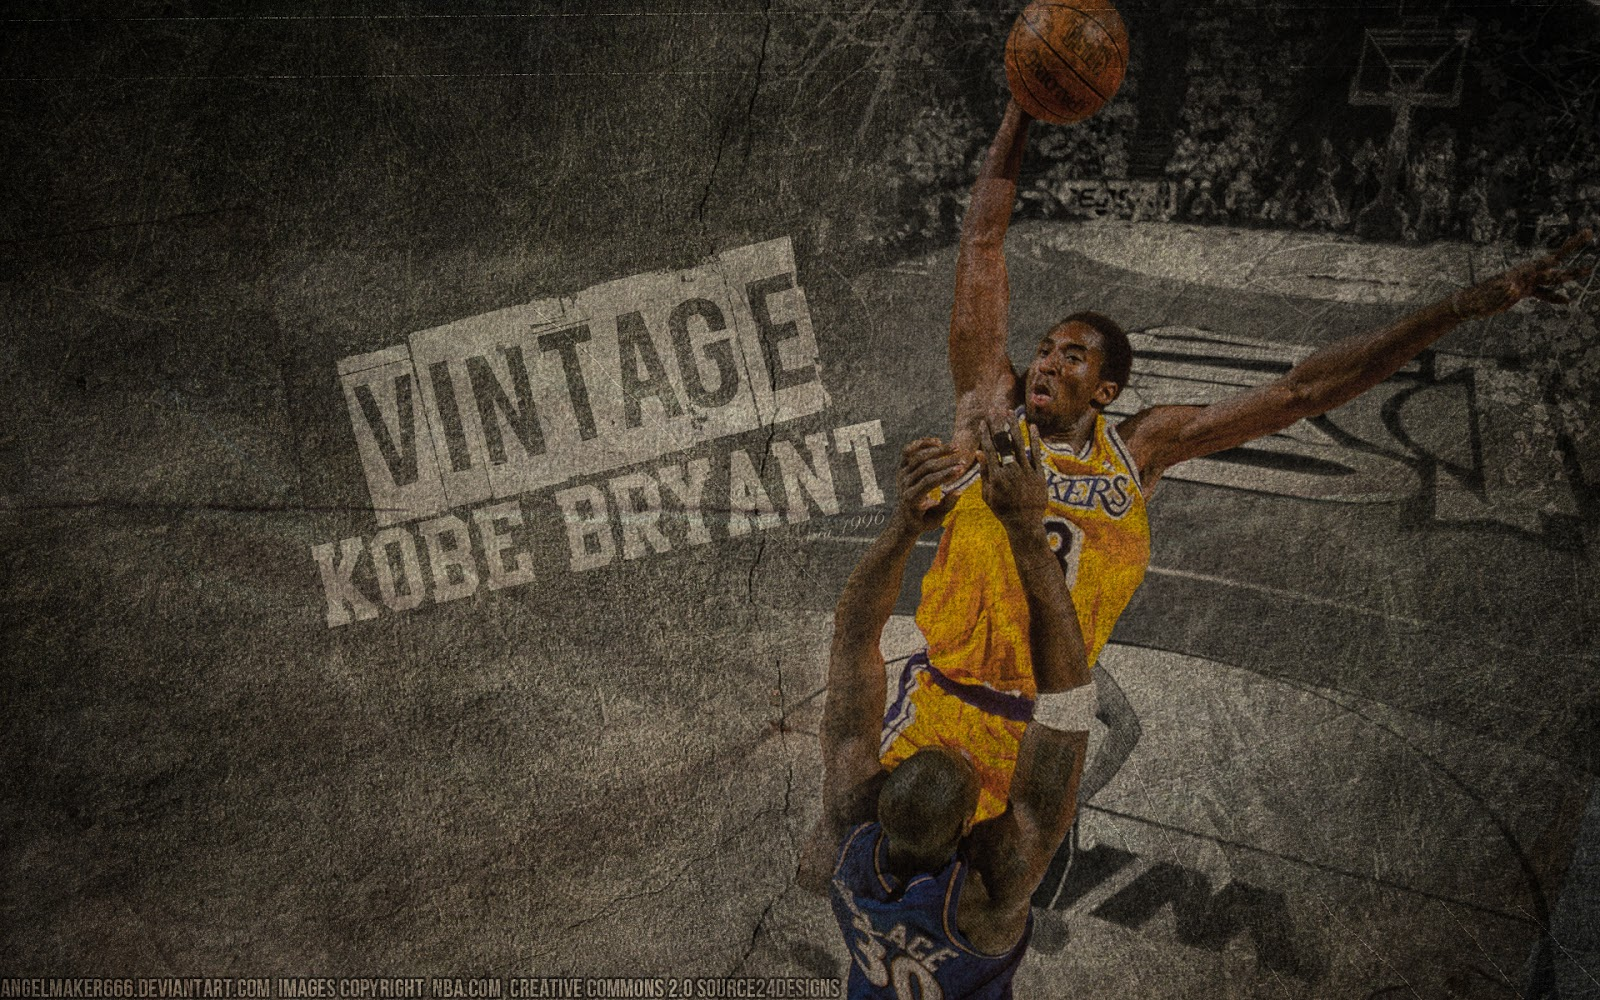 kobe bryant nice wallpapers - photo #24